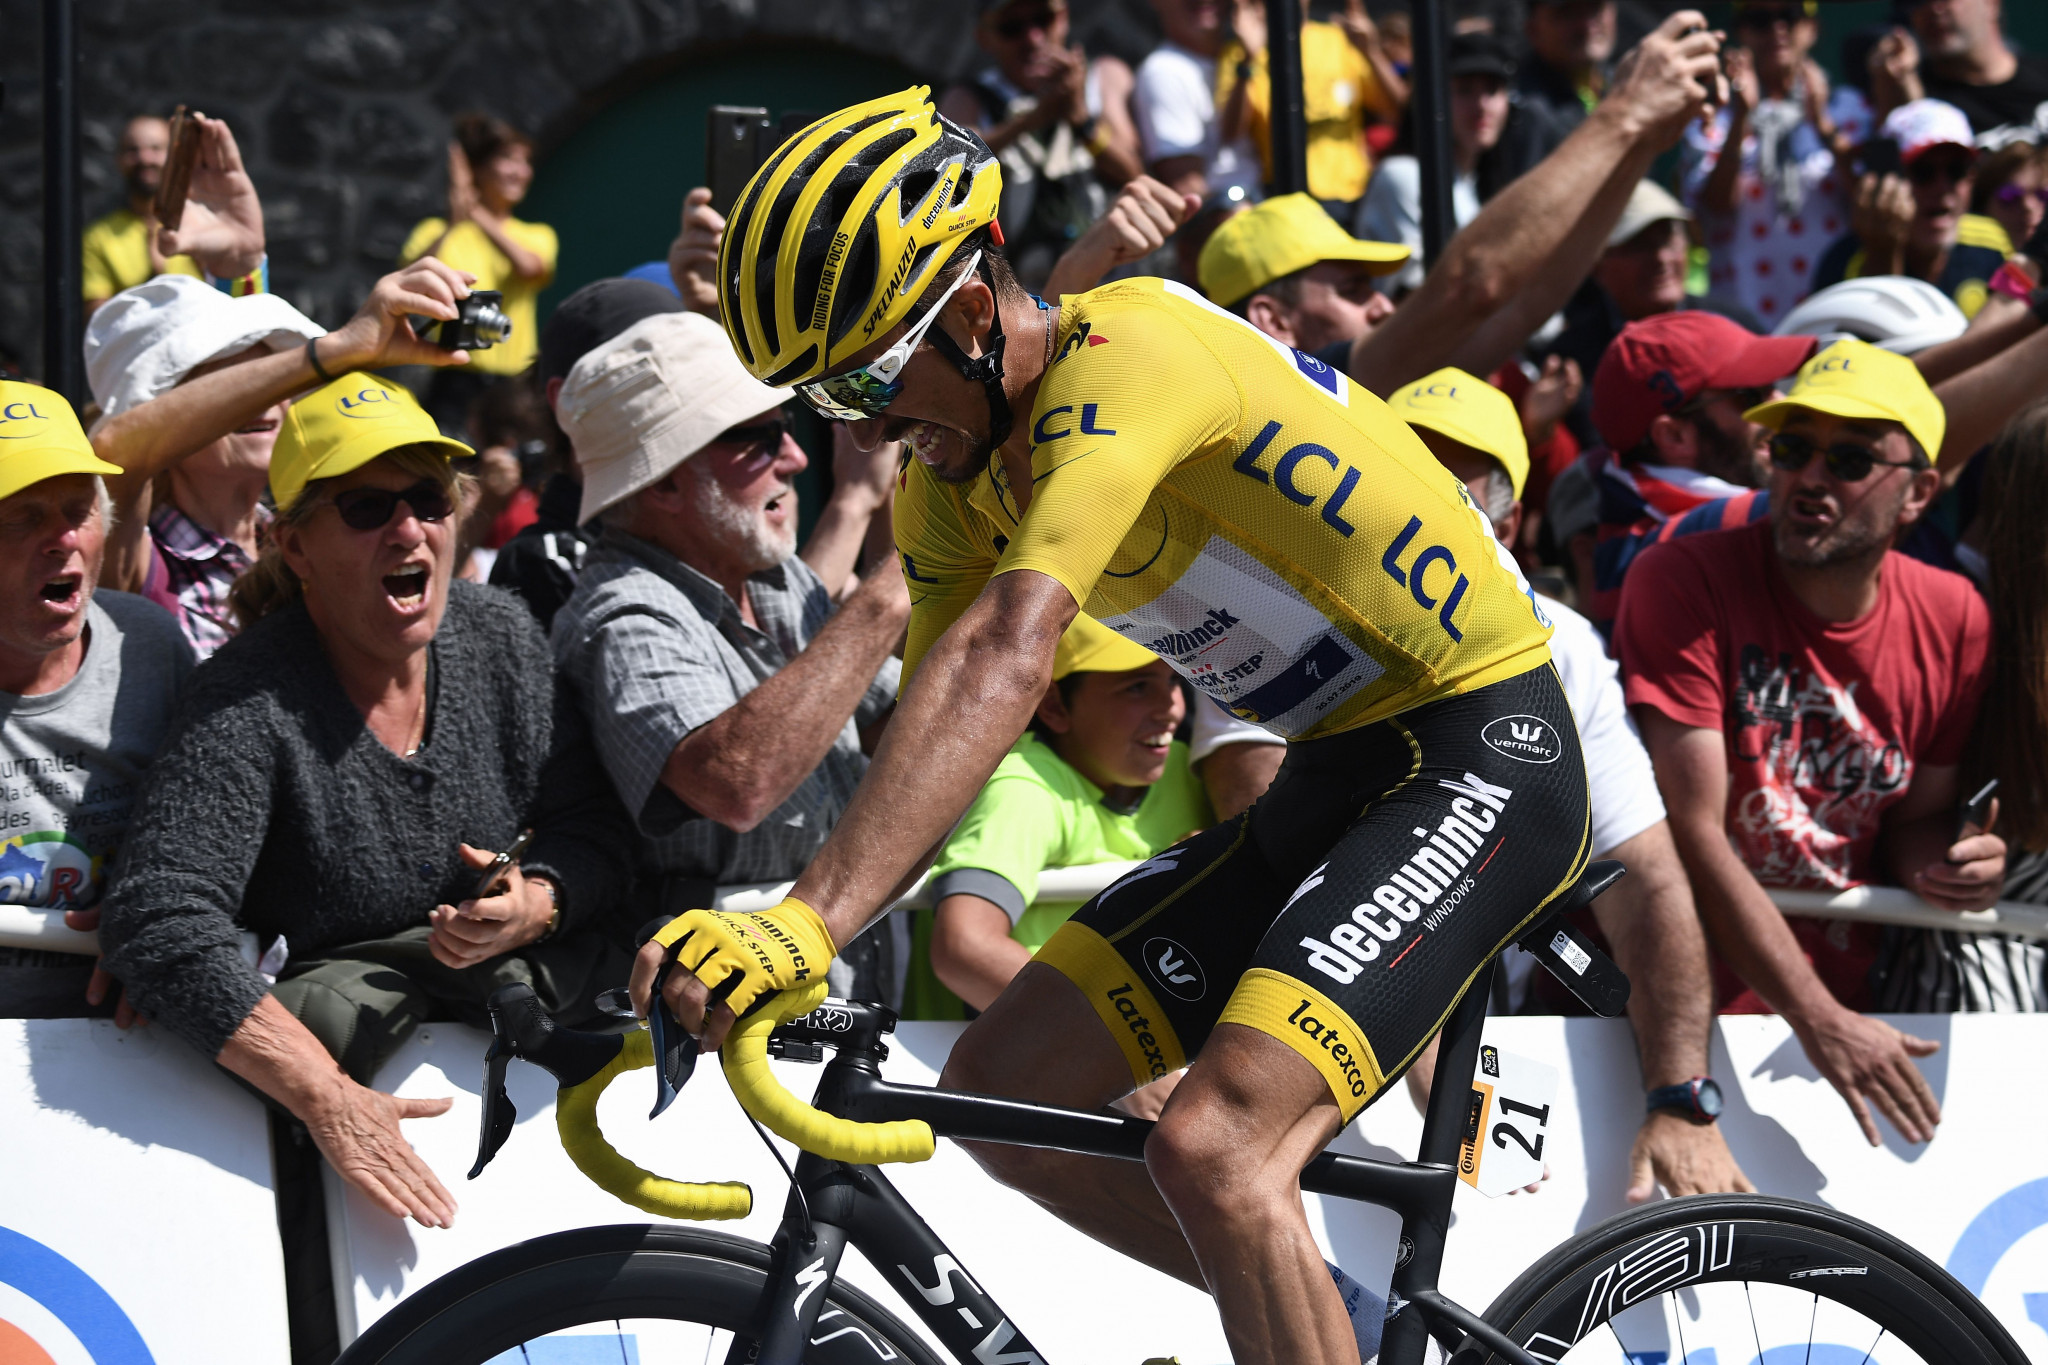 Alaphilippe extends lead as Thomas loses time on gruelling 14th stage at Tour de France